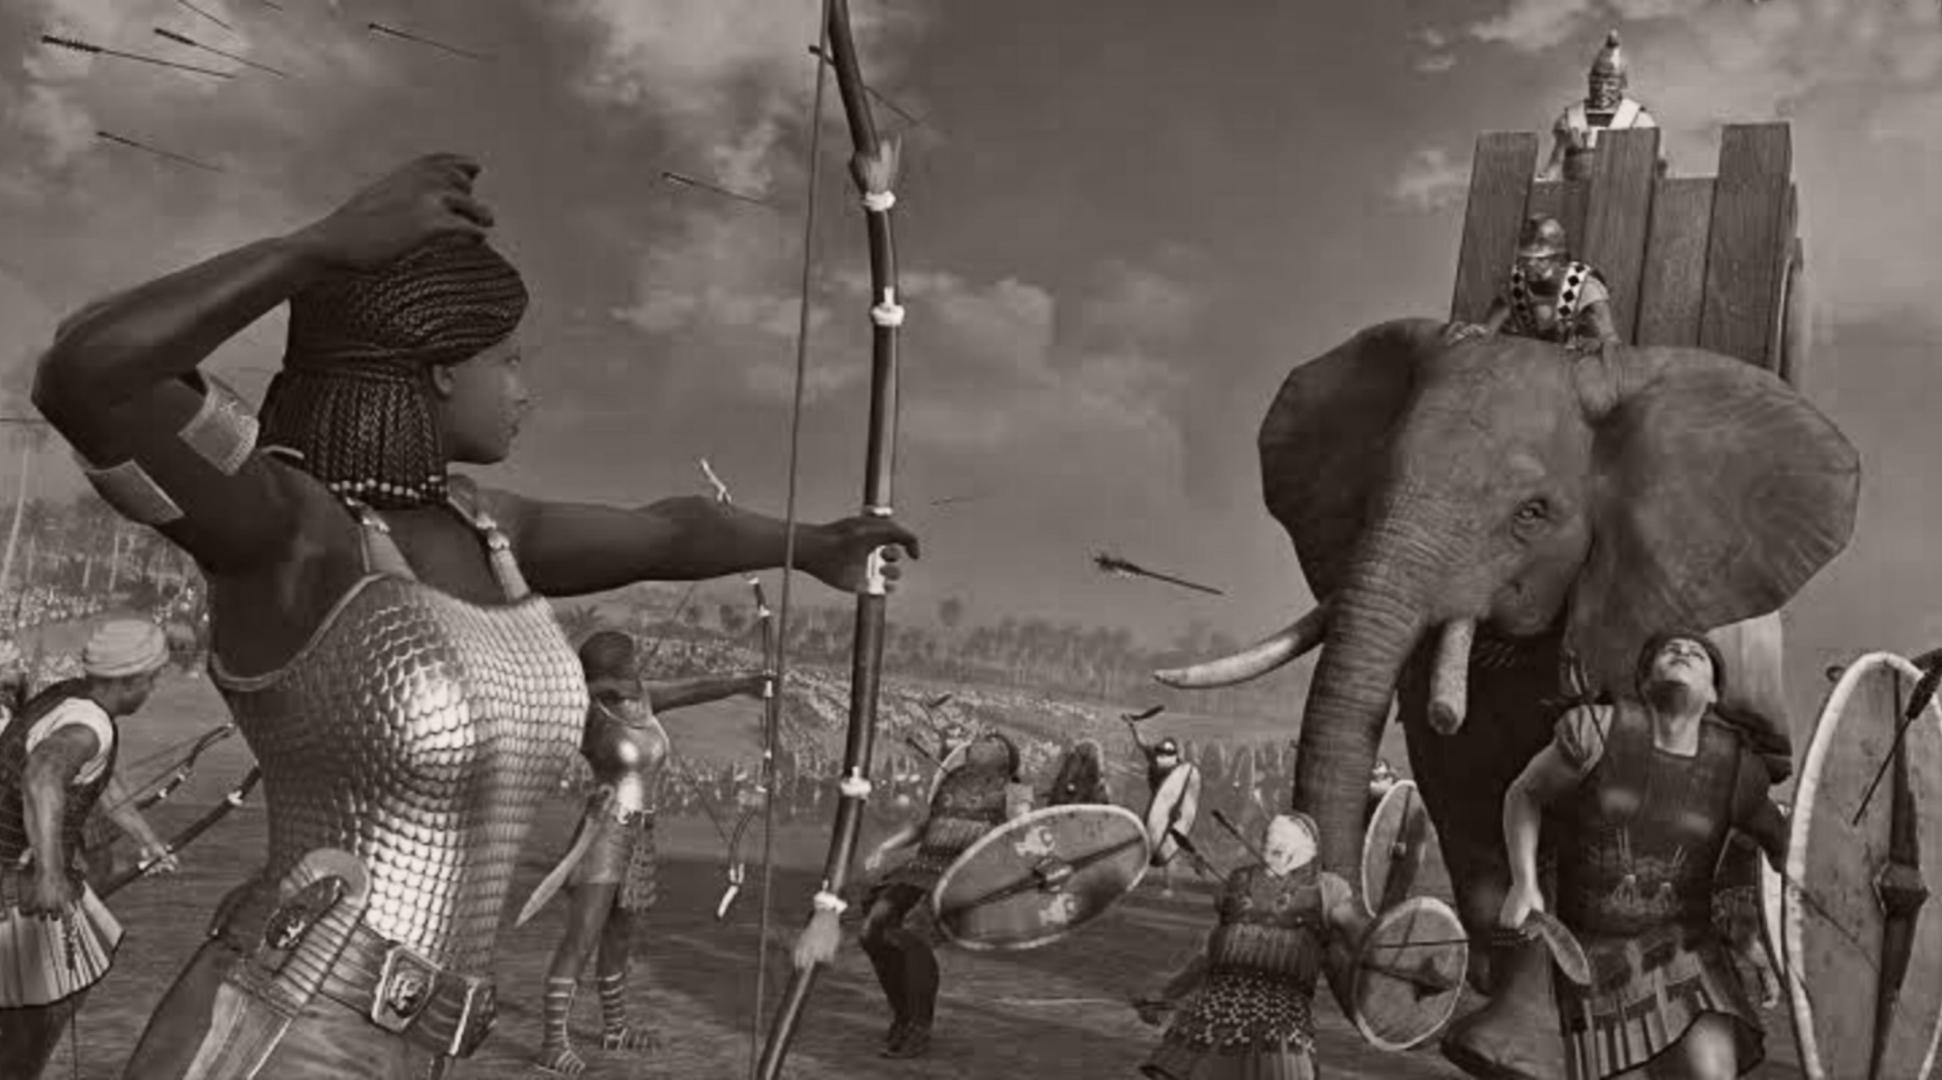 Kush Kingdom: Queen Amanitore who commanded armies to battle (50 CE)